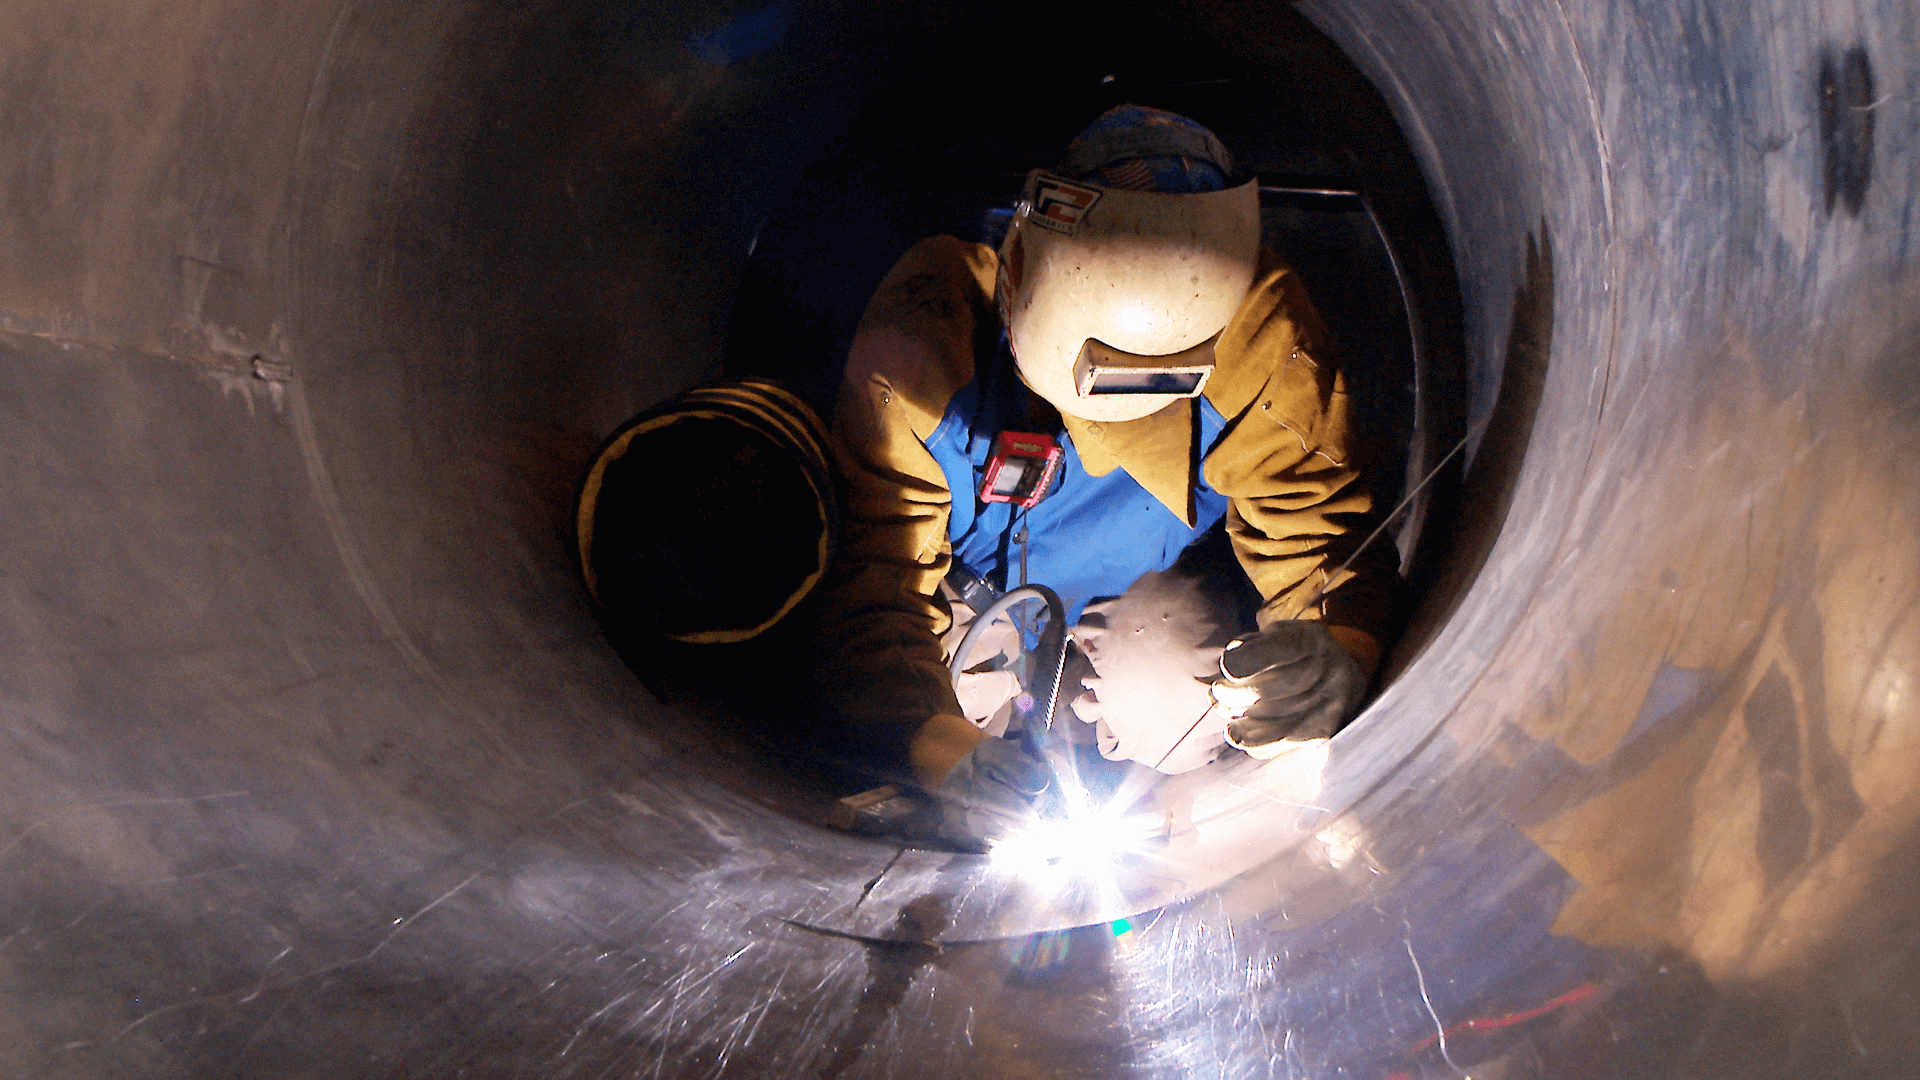 Welding in a confined space